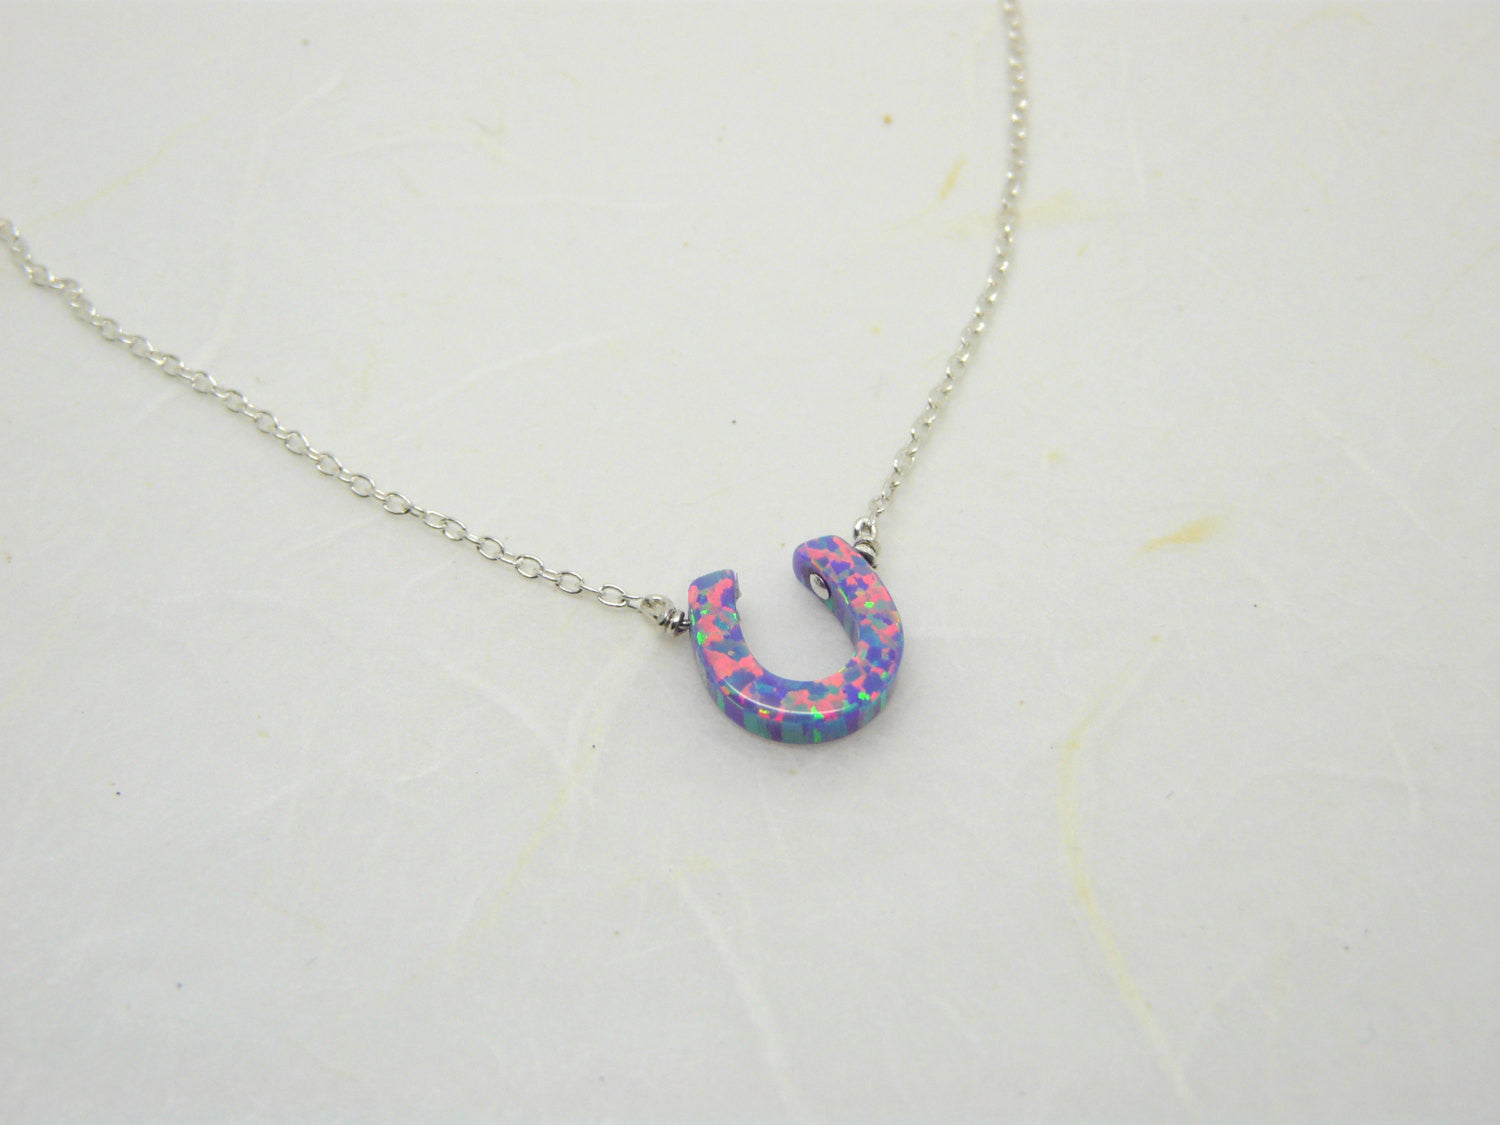 Opal Horseshoe necklace - OpaLandJewelry